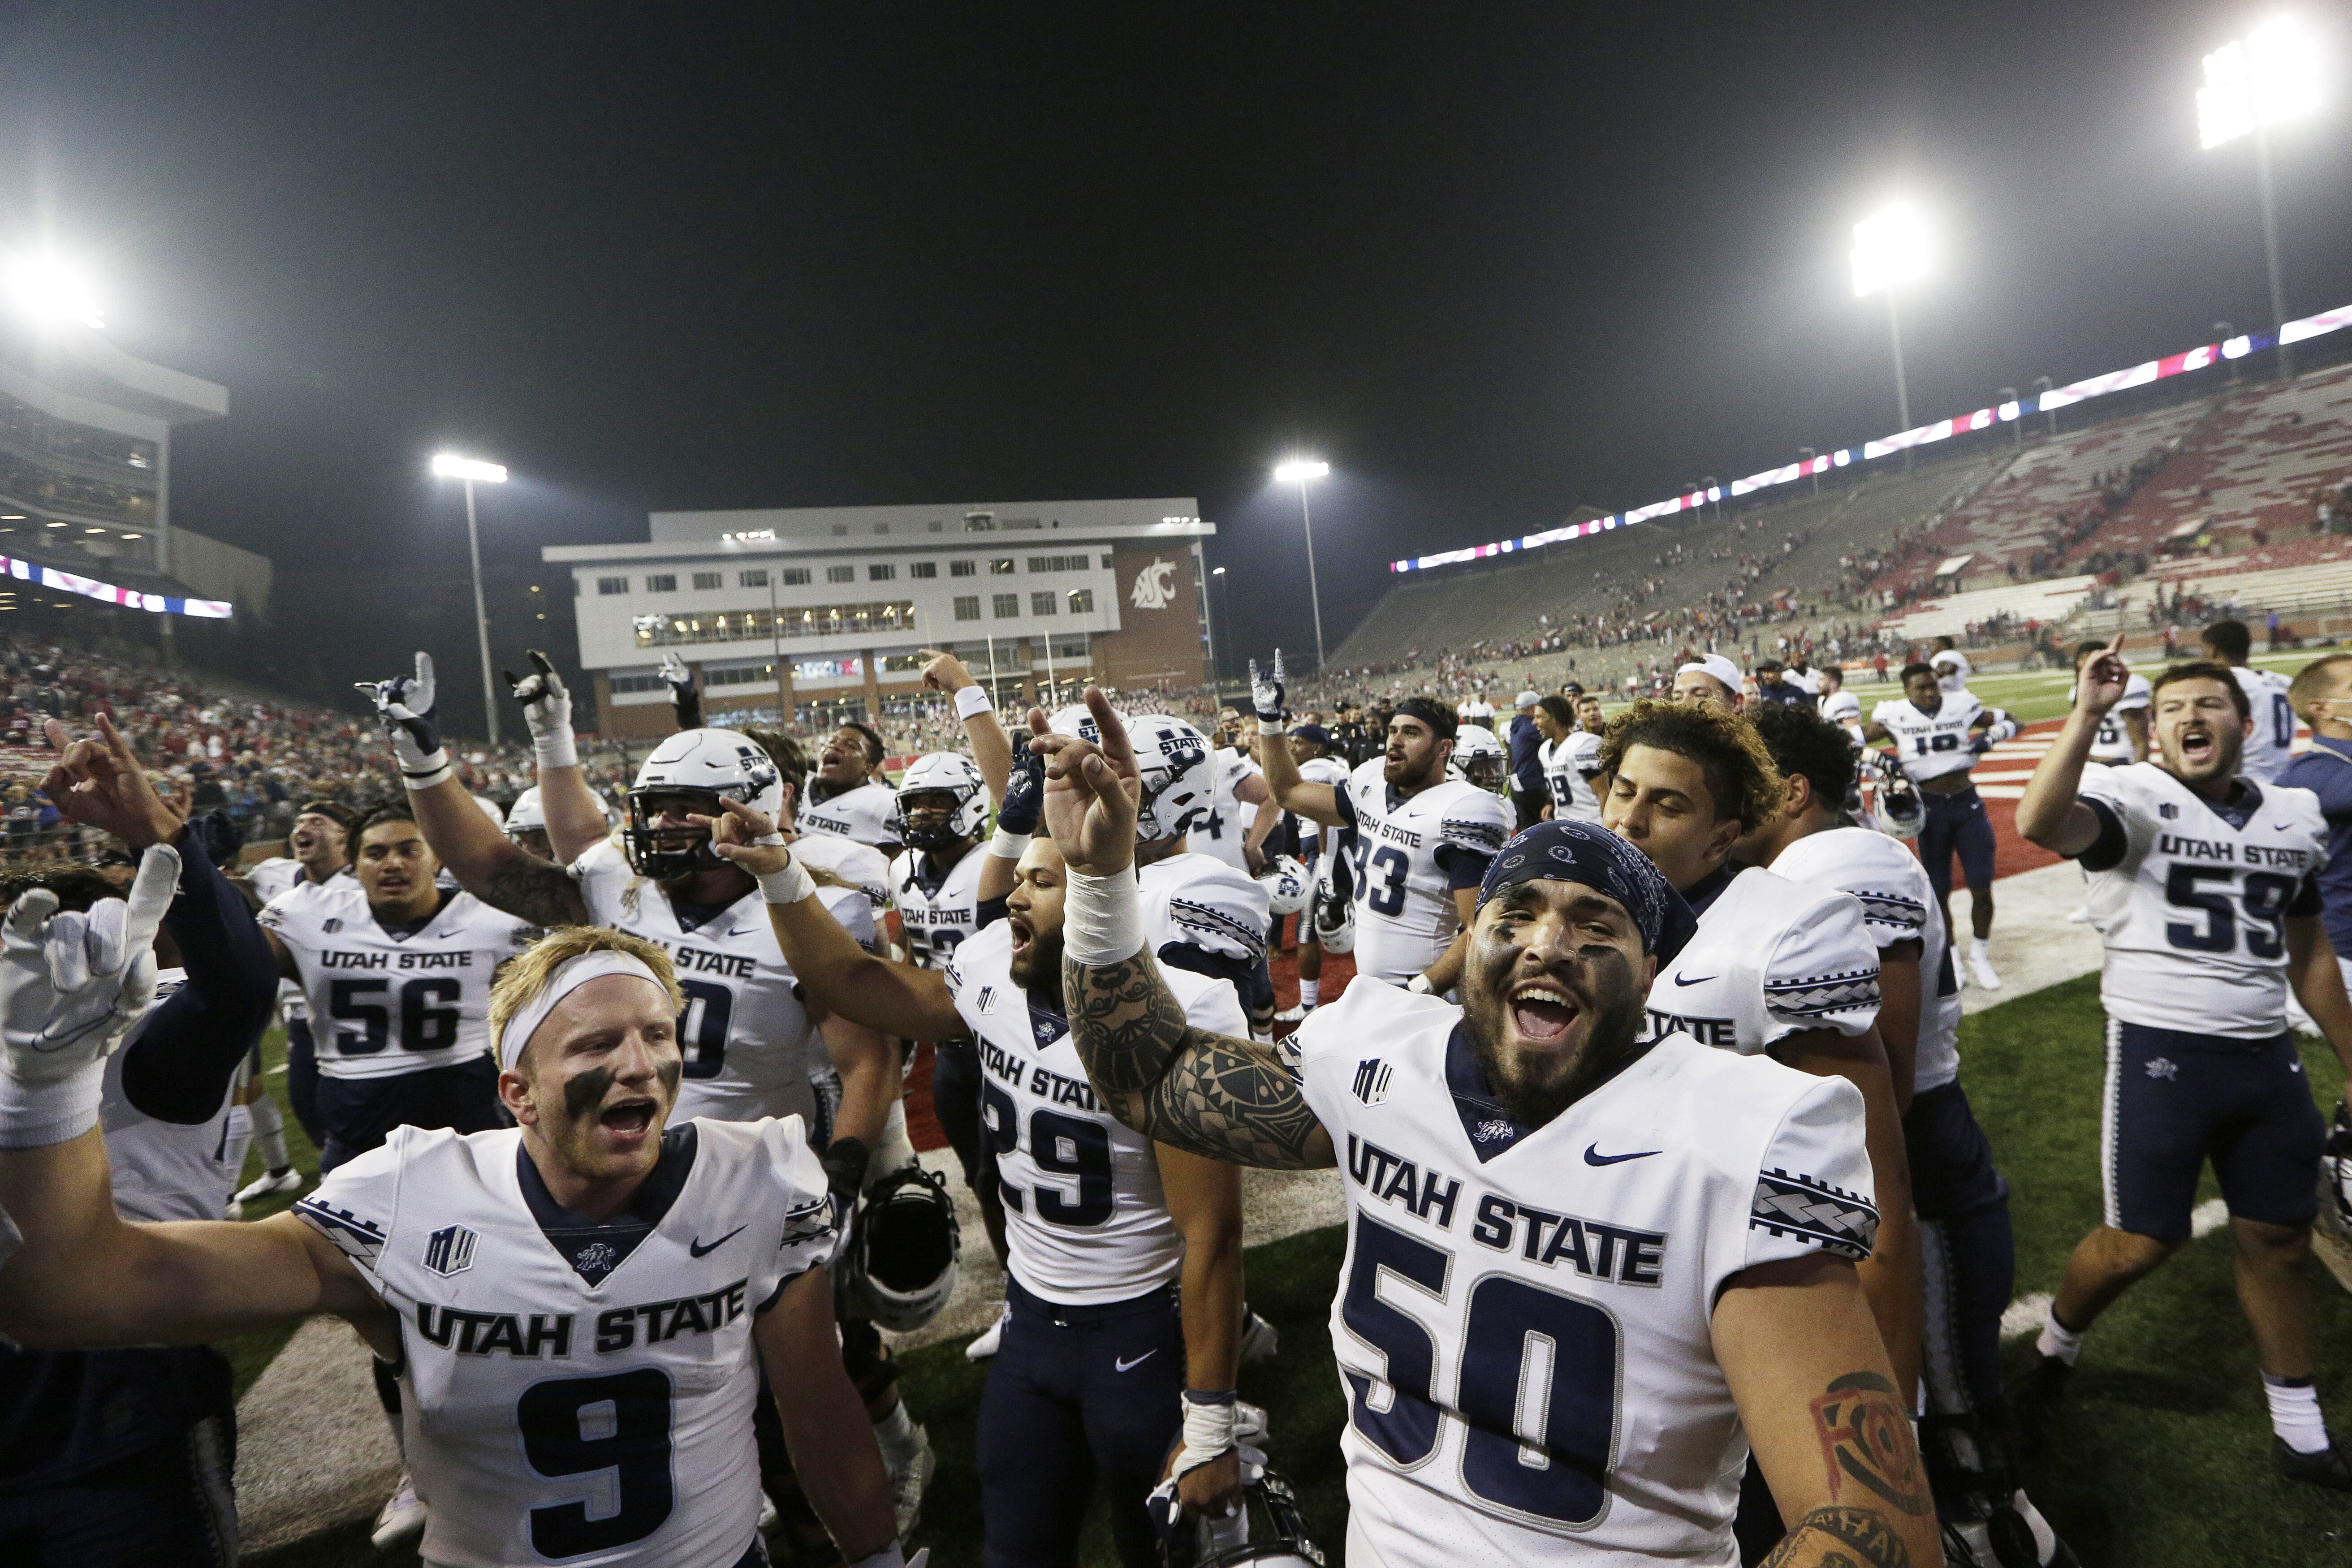 Utah State players sing the school's song while celebrating with fans after winning 26-23 against Washington State.